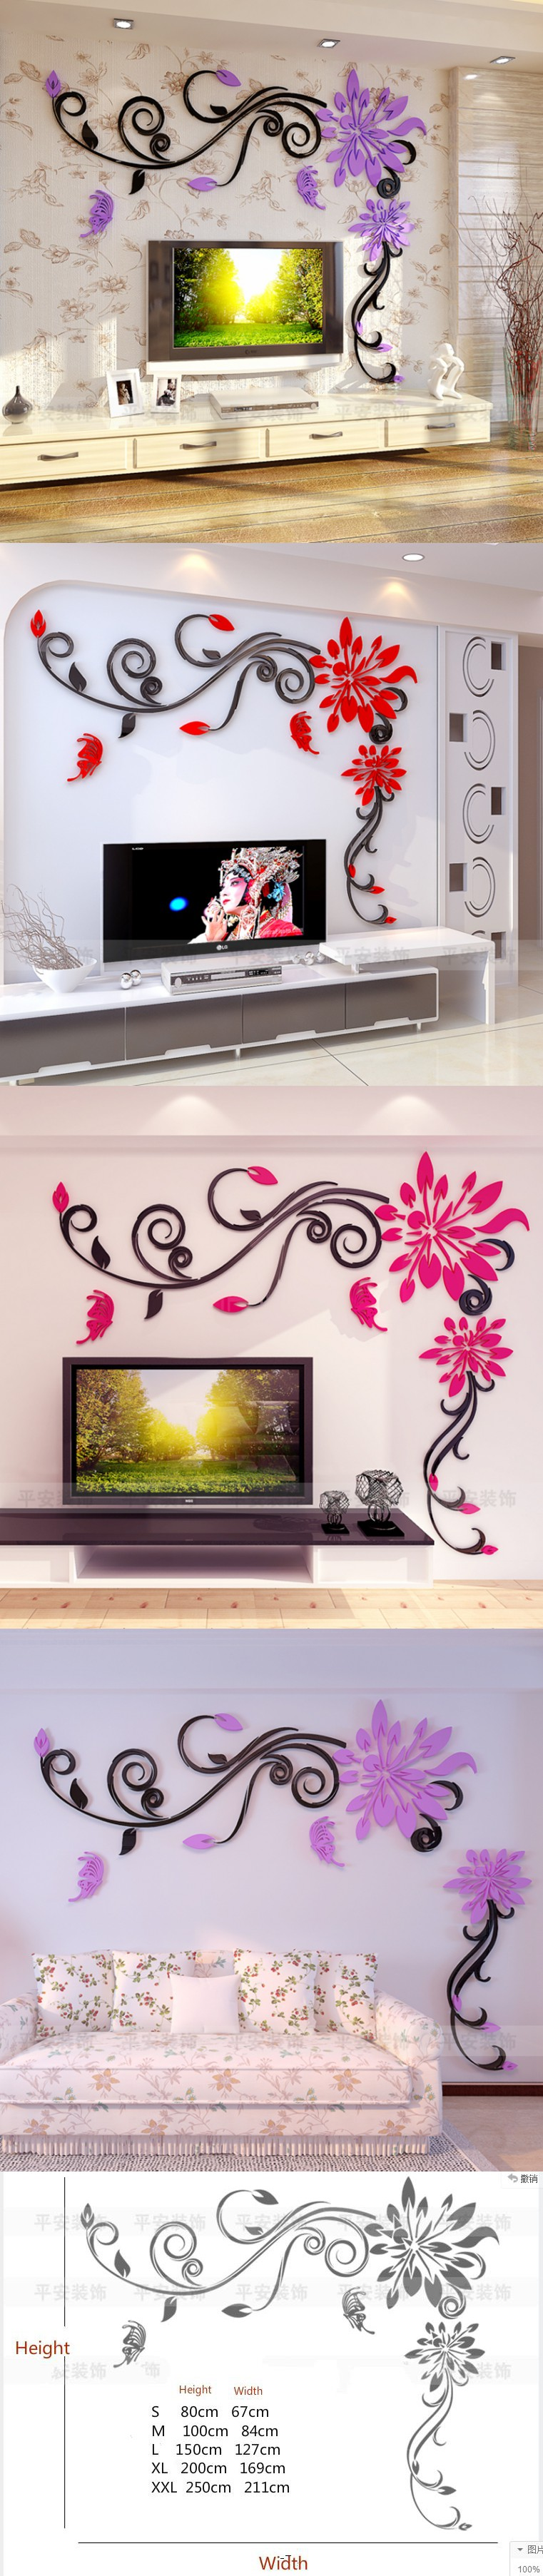 Acrylic crystal flower vine 3d wall stickers living room wall acrylic crystal flower vine 3d wall stickers living room wall decoration removable sticker creative home decor tree butterfly amipublicfo Choice Image